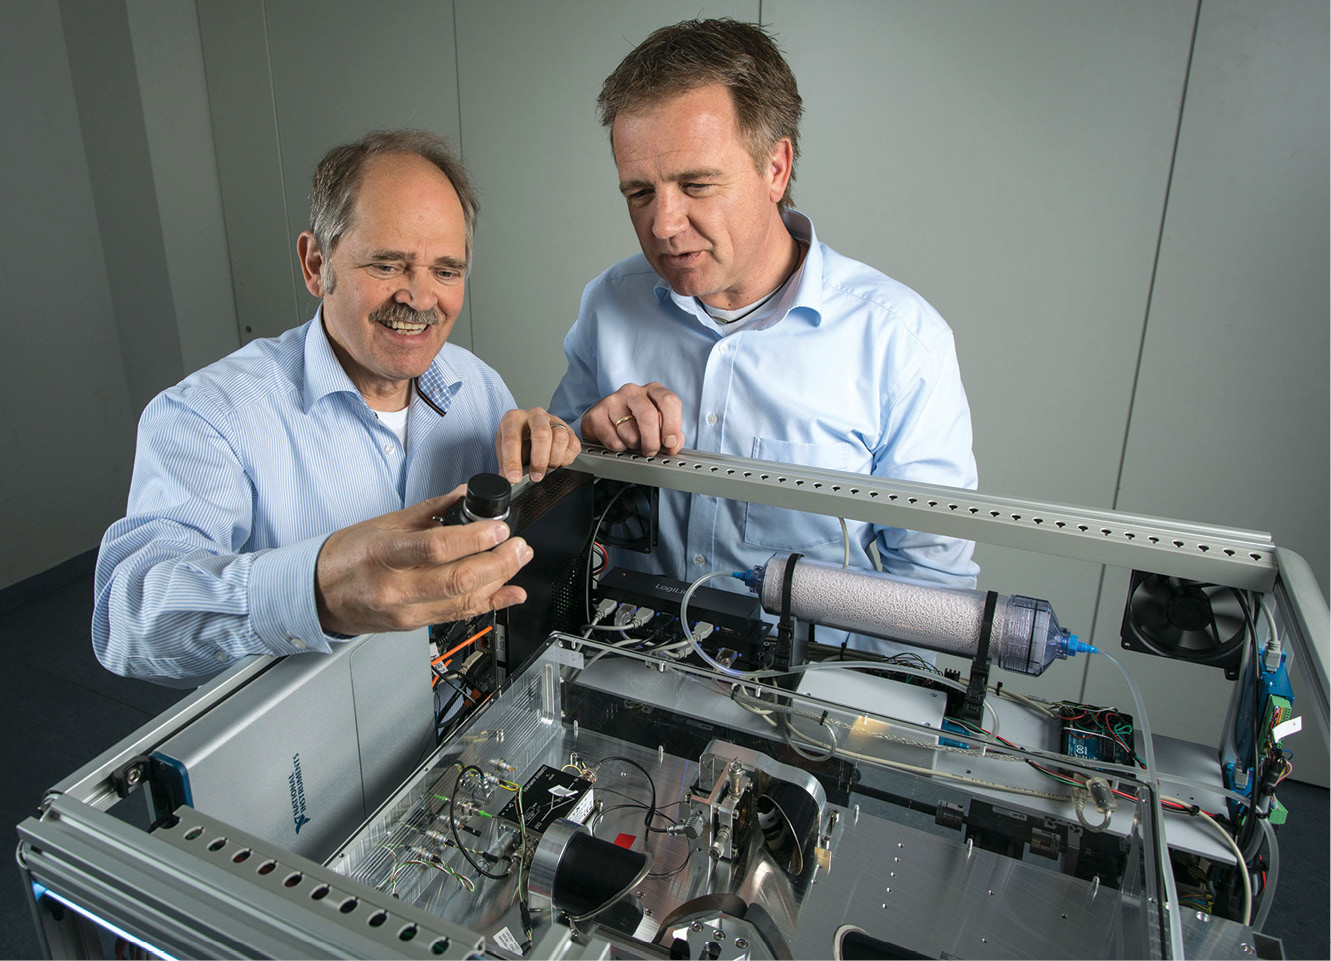 The inventors with their terahertz scanner (Courtesy: Fraunhofer Institute)